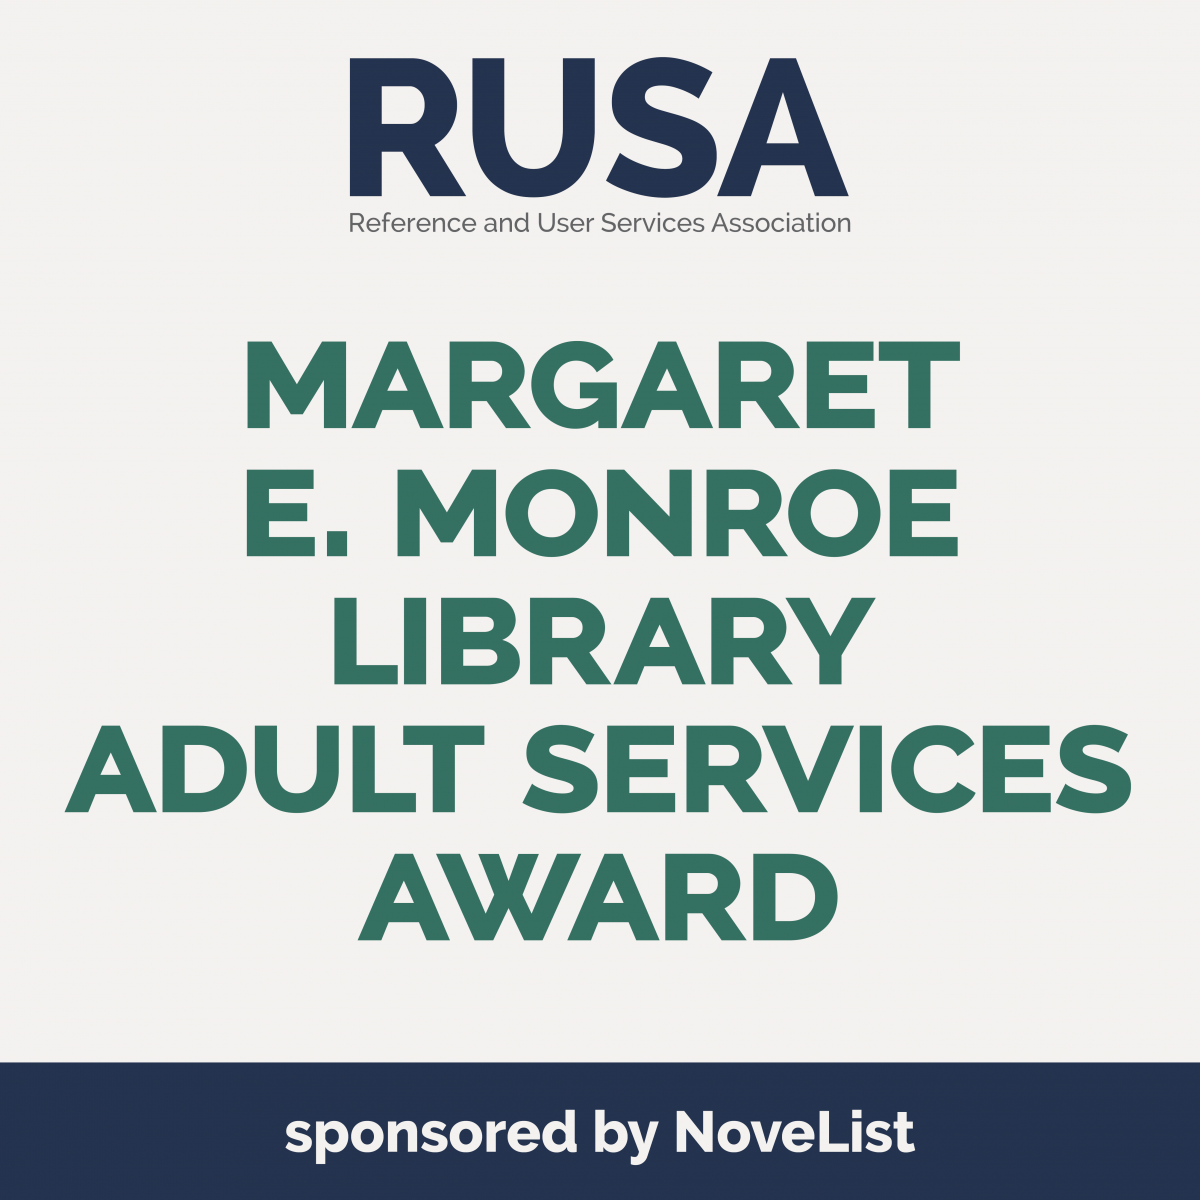 Margaret E. Monroe Library Adult Services Award